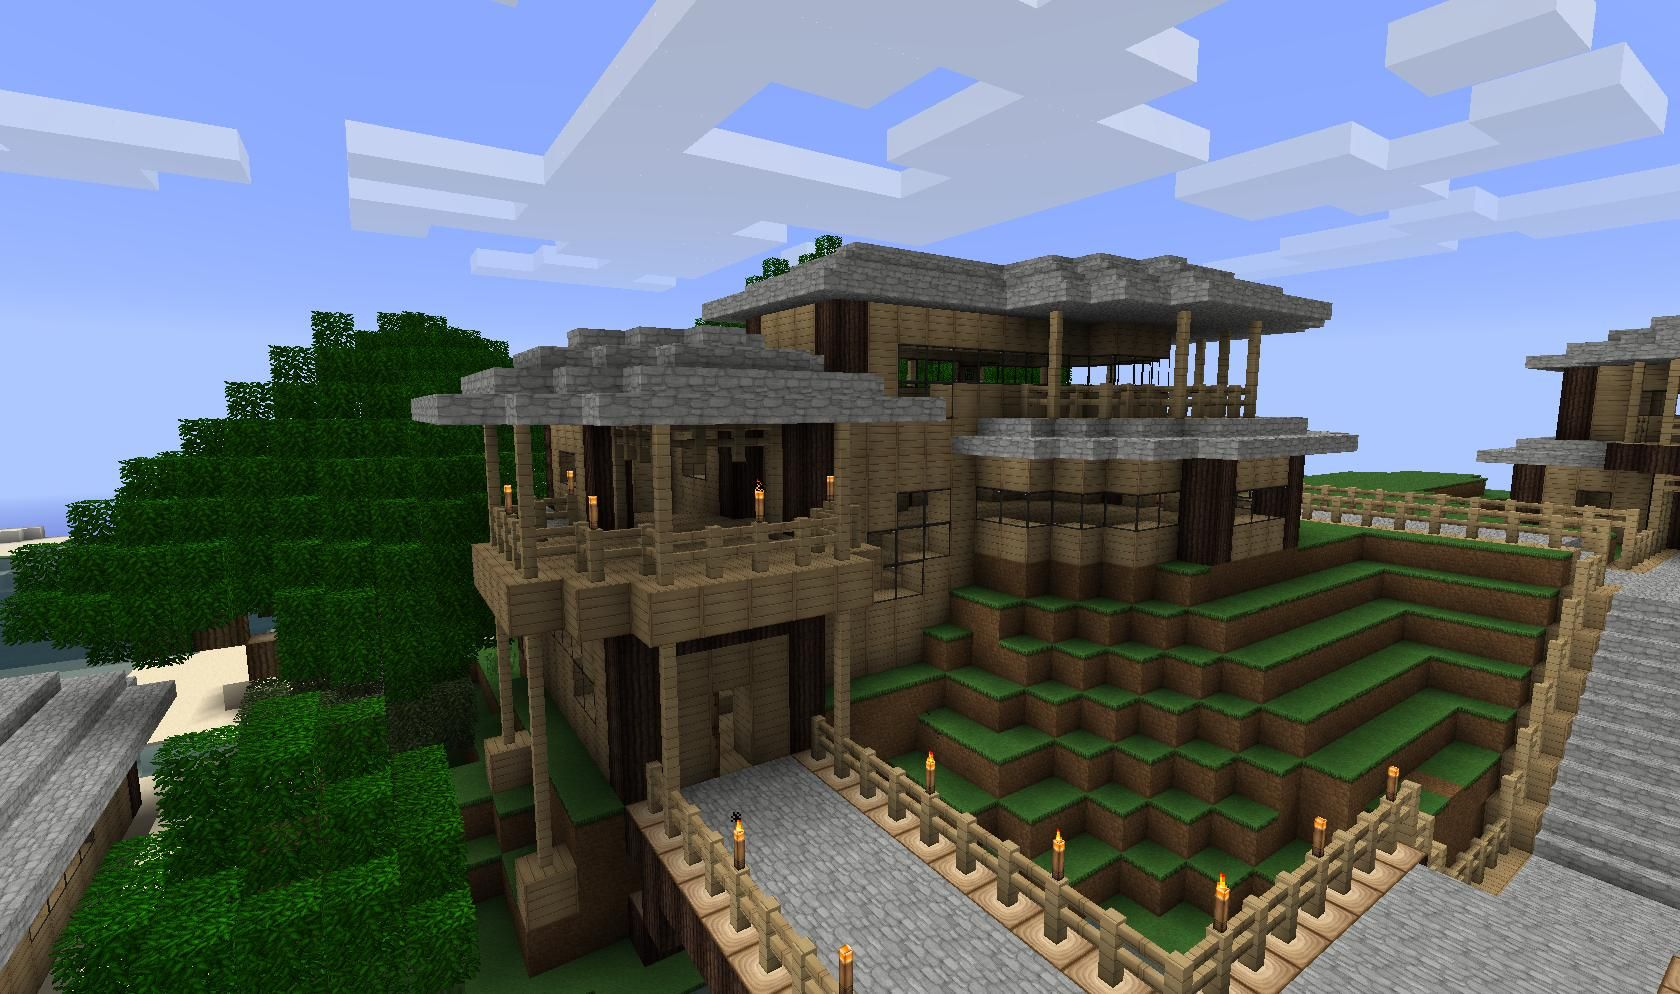 Minecraft simple house ideas ufpo90gf minecraft for Minecraft house ideas